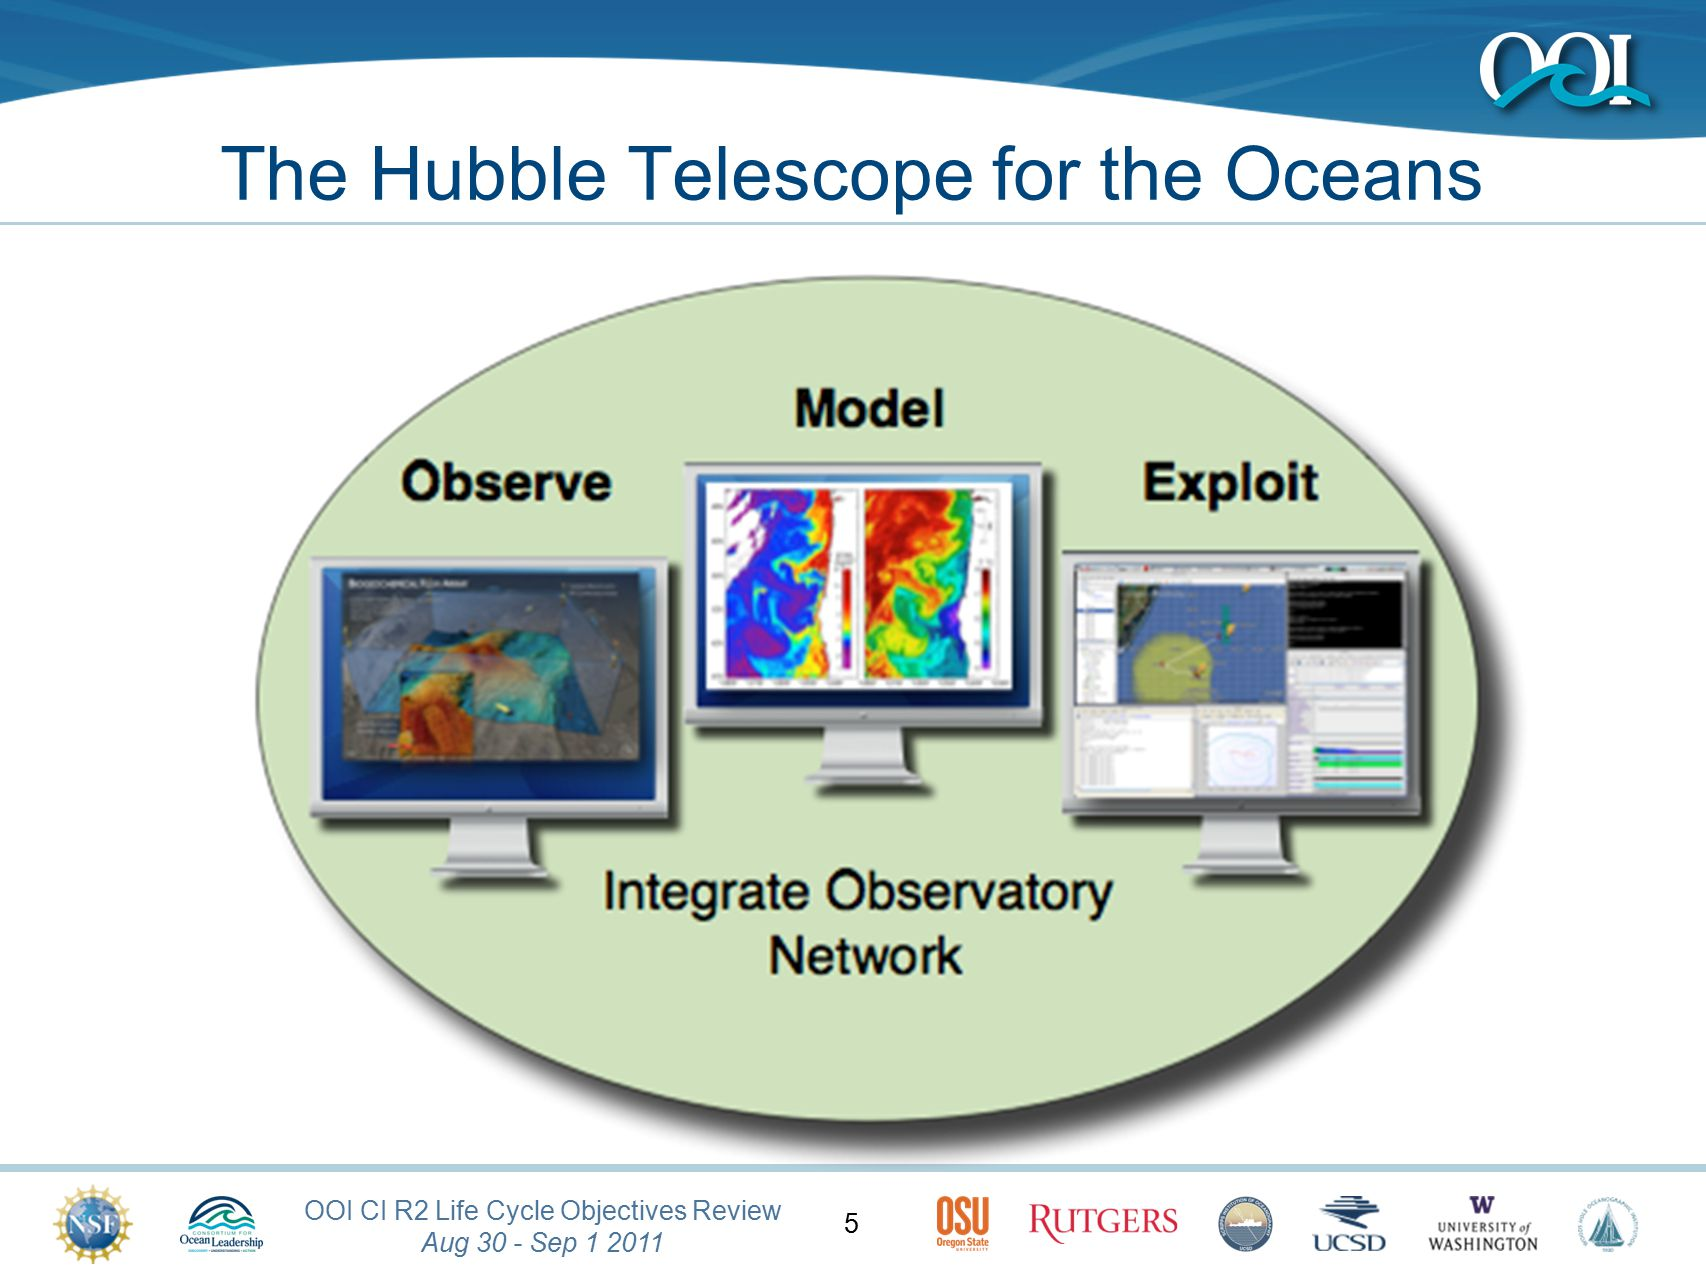 OOI CI R2 Life Cycle Objectives Review Aug 30 - Sep 1 2011 5 The Hubble Telescope for the Oceans